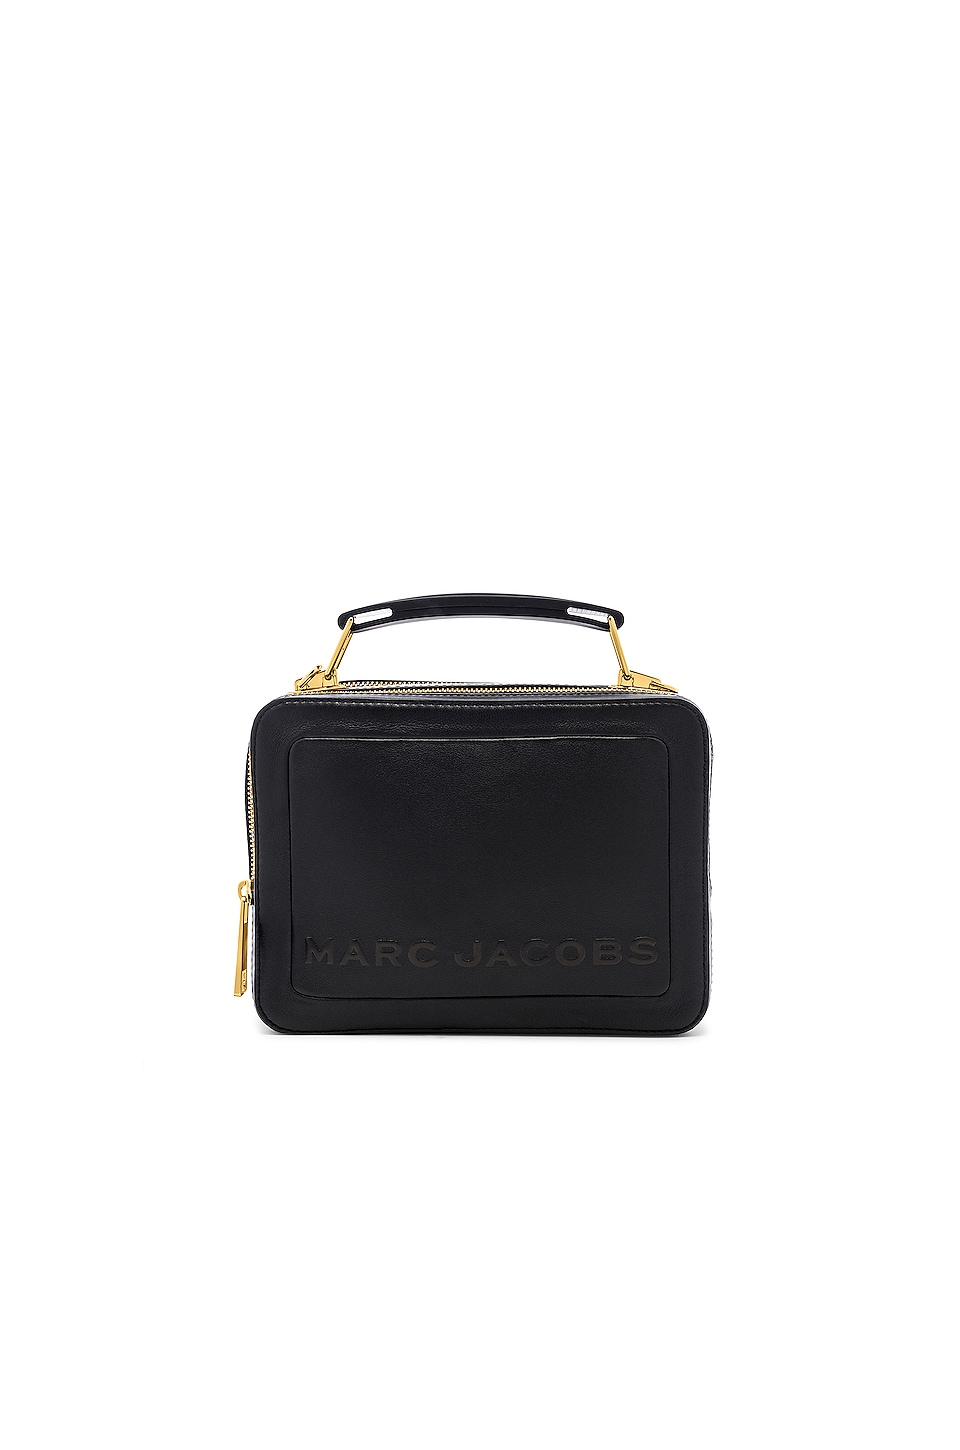 Marc Jacobs The Box 23 in Black